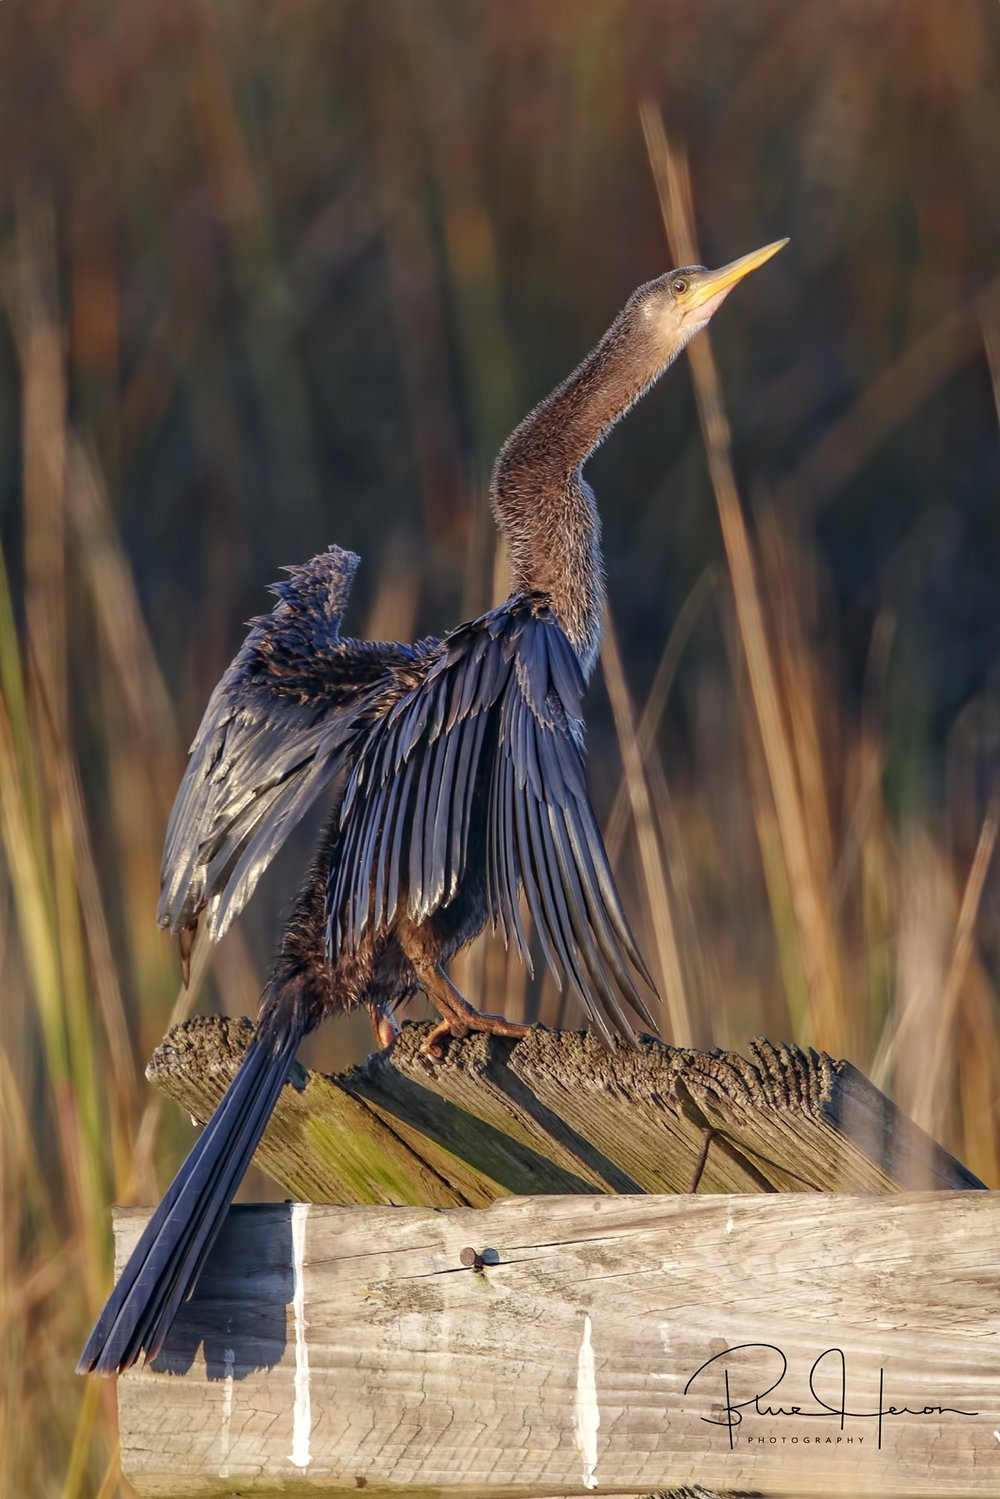 Female Anhinga drying out its wings in the warm morning sun.